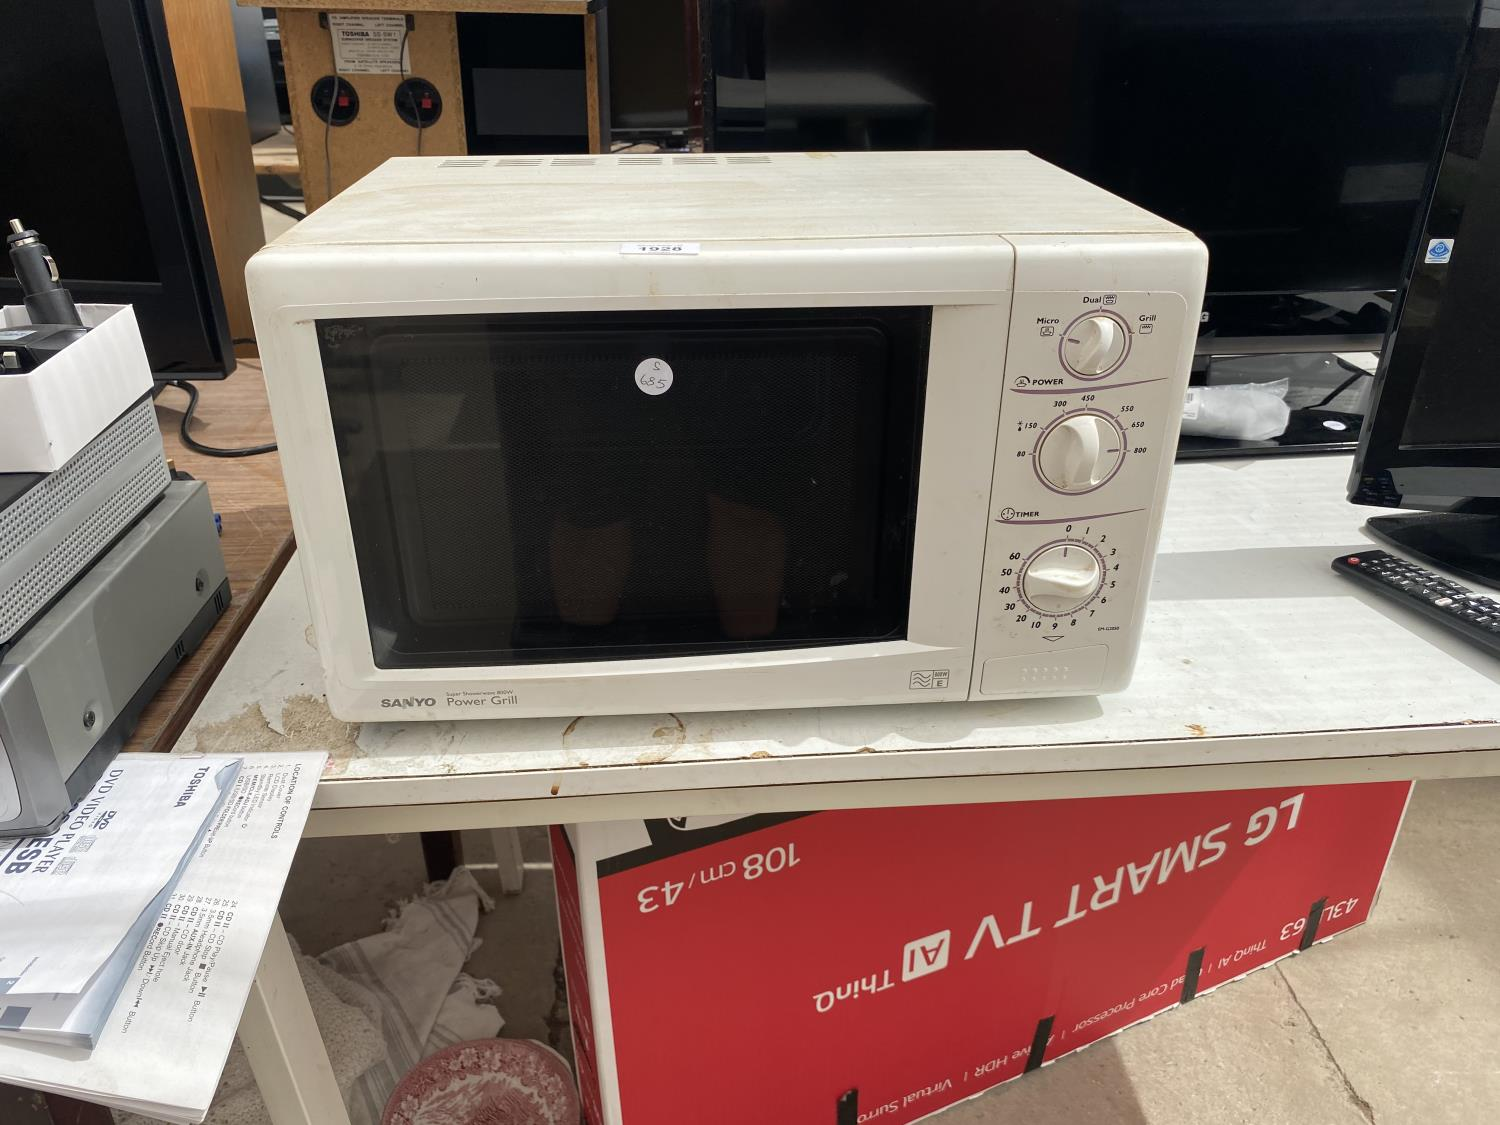 A WHITE SANYO MICROWAVE OVEN